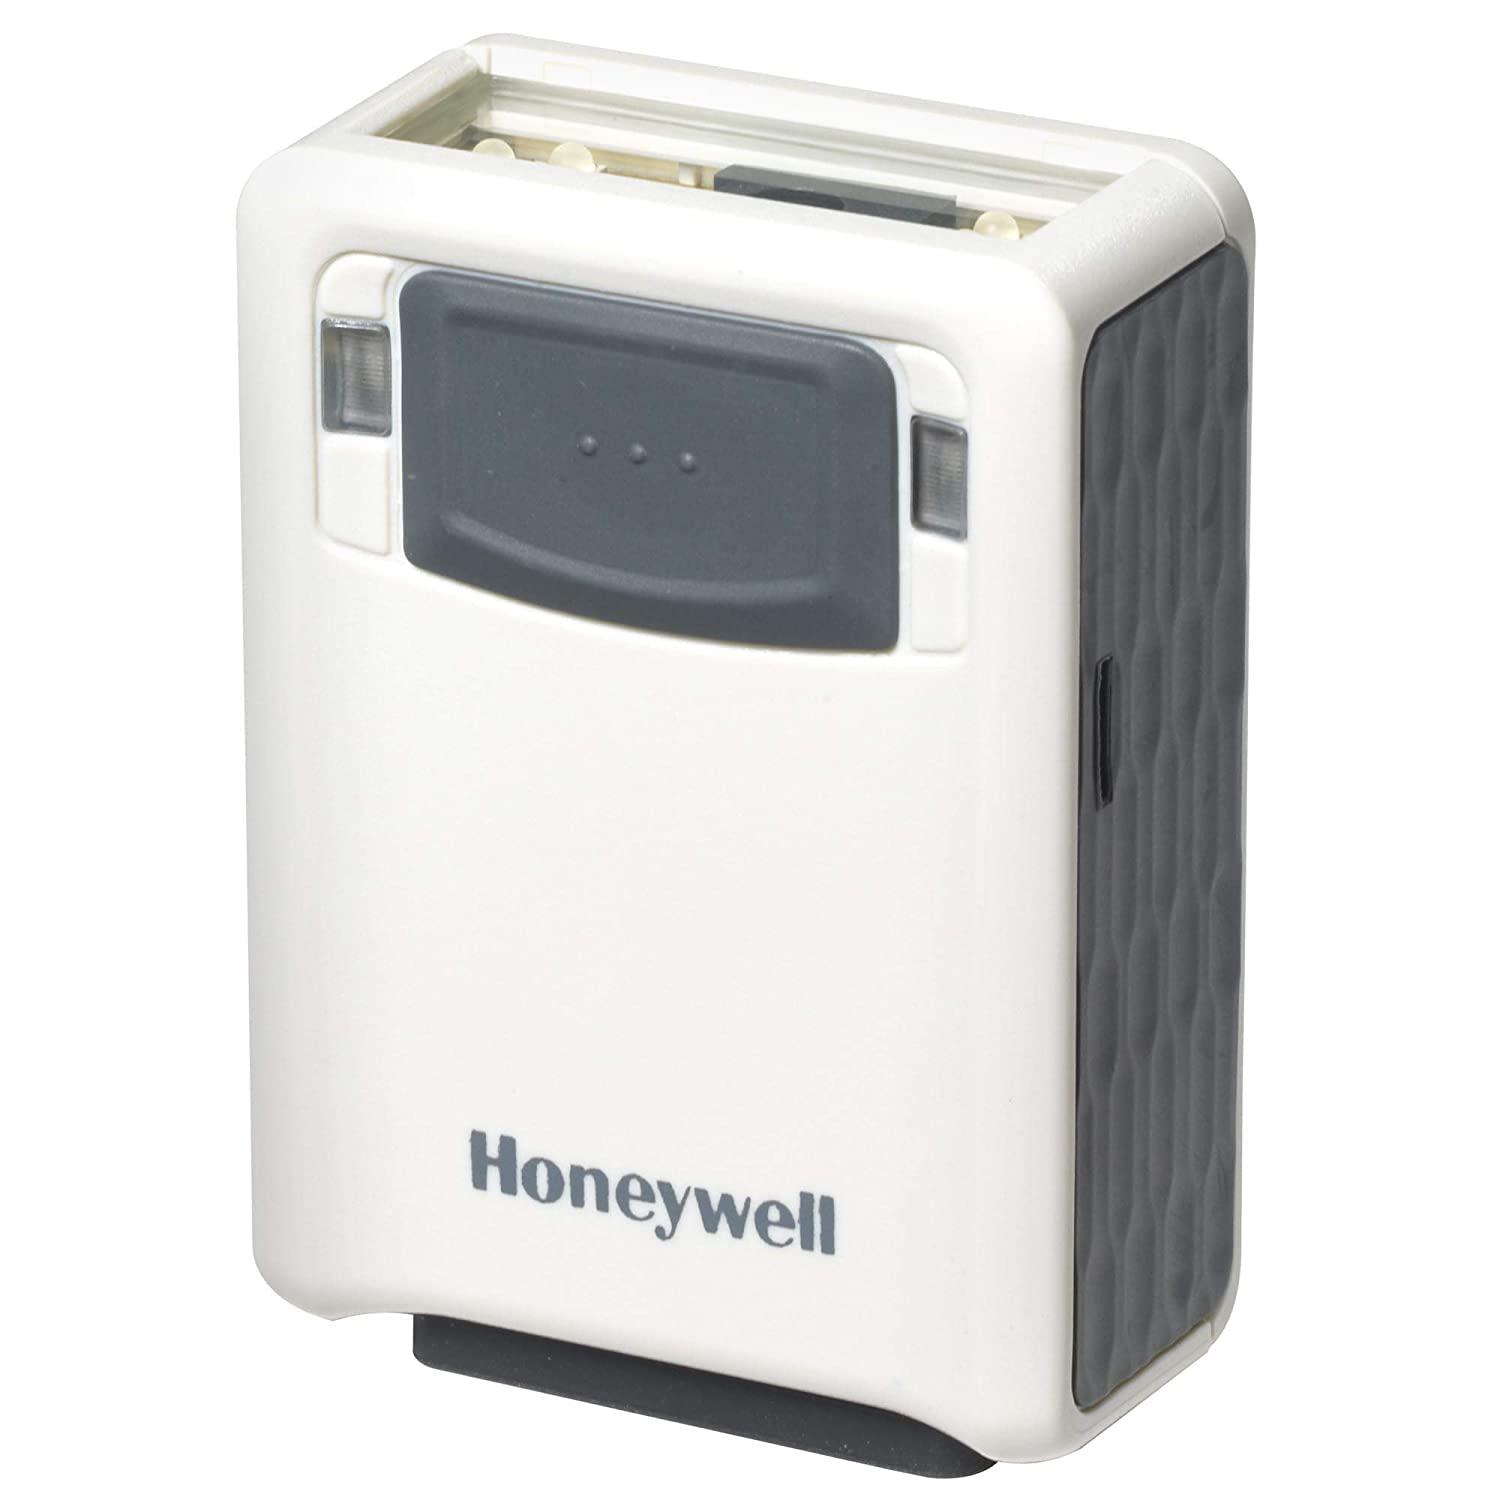 Honeywell 3320G-4USB-0 Vuquest 3320g Area Imaging Scanner USB Kit for 1D/PDF417/2D Barcode, 2.9M Straight Type A Cable, Documentation, Gray